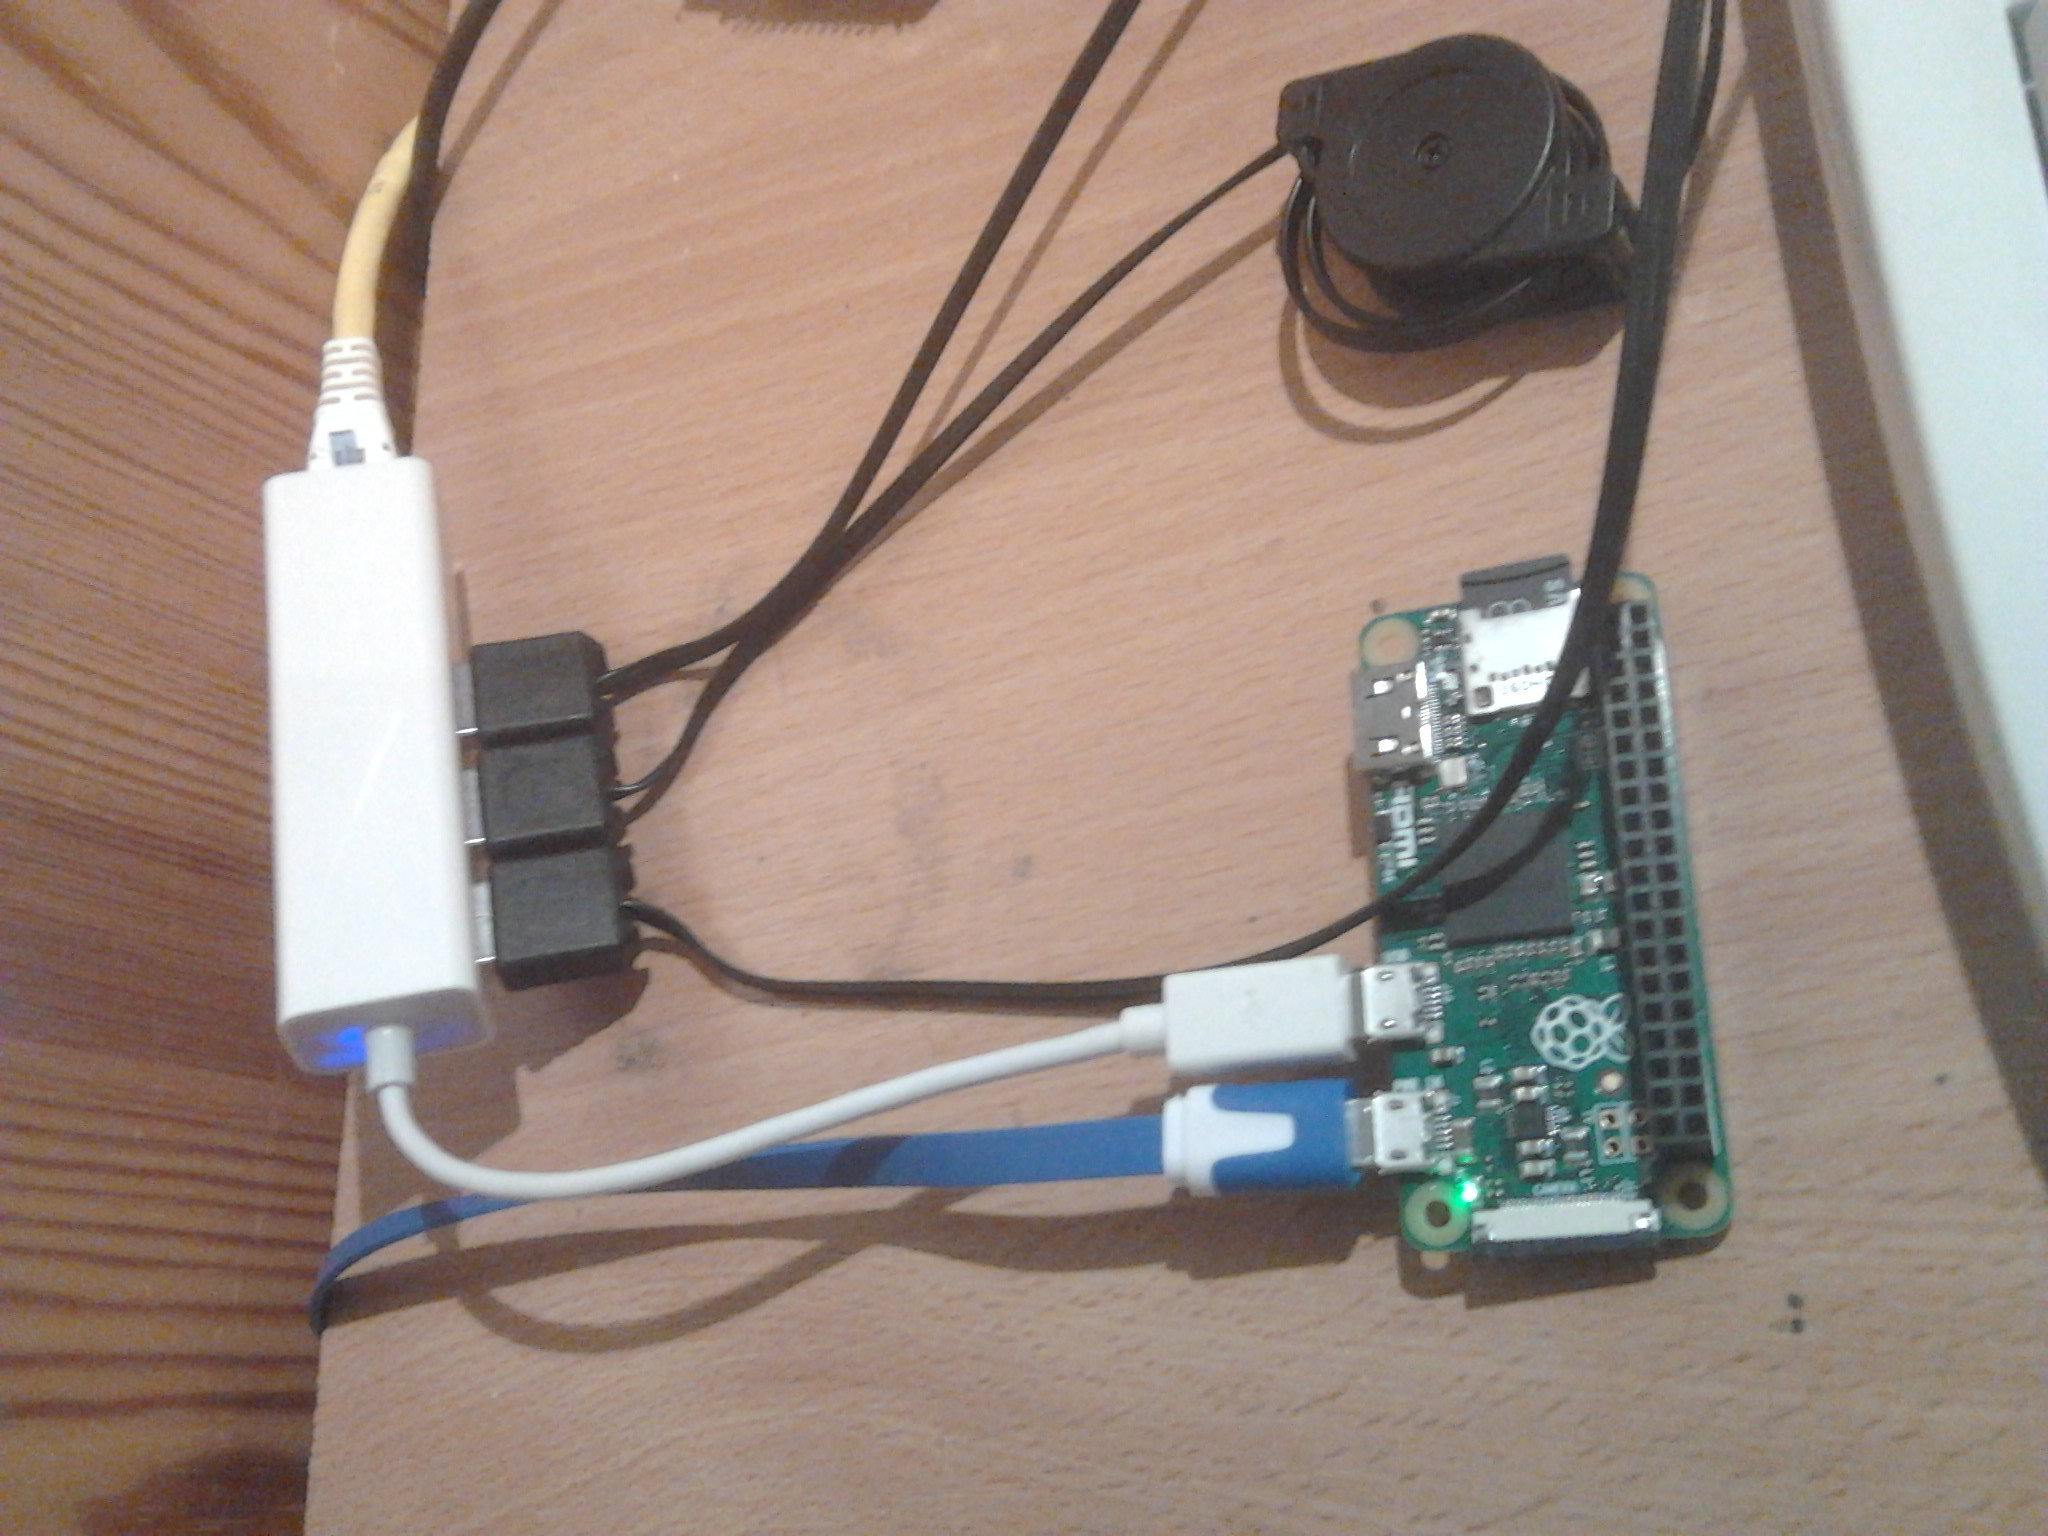 Pi Zero works with 3 USB cameras and ethernet - Raspberry Pi